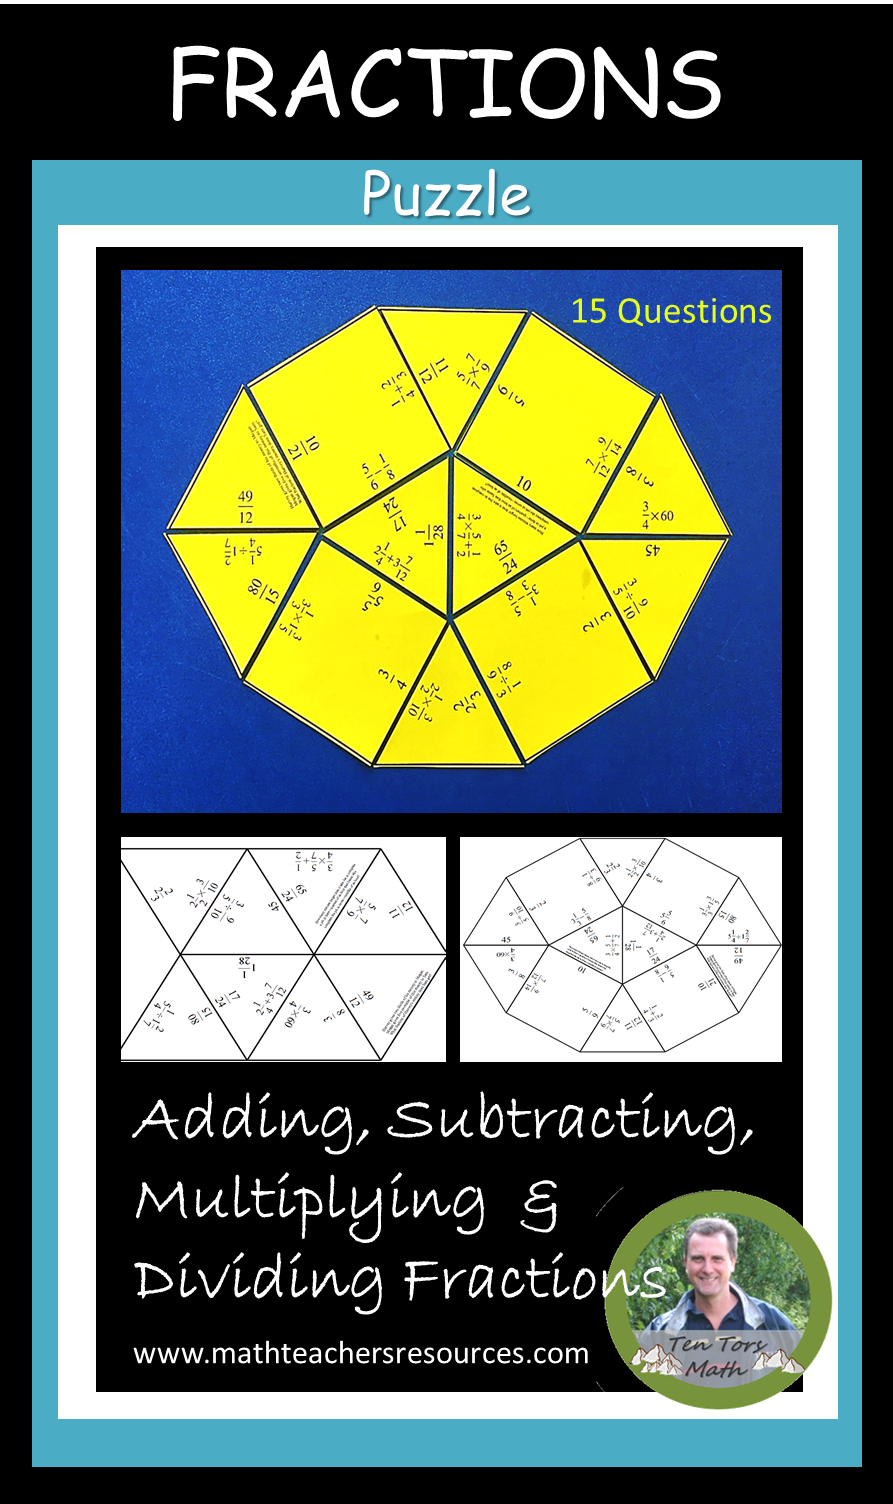 An activity for students to practice multiplying, dividing